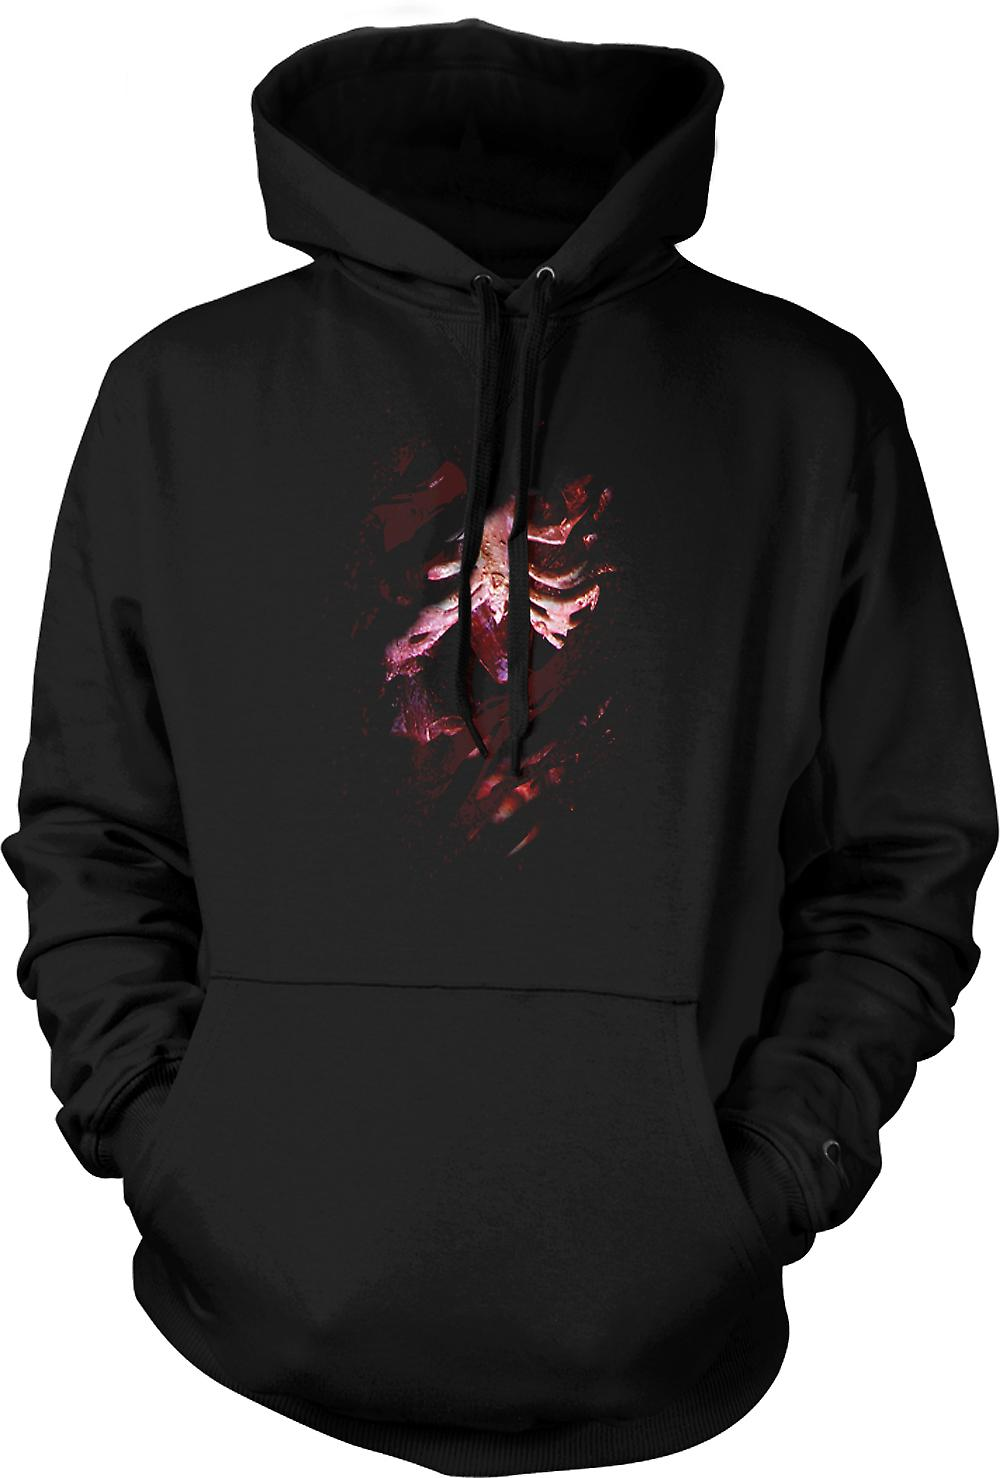 Mens Hoodie - Zombie Skeleton Undead  Heart Ripped Design